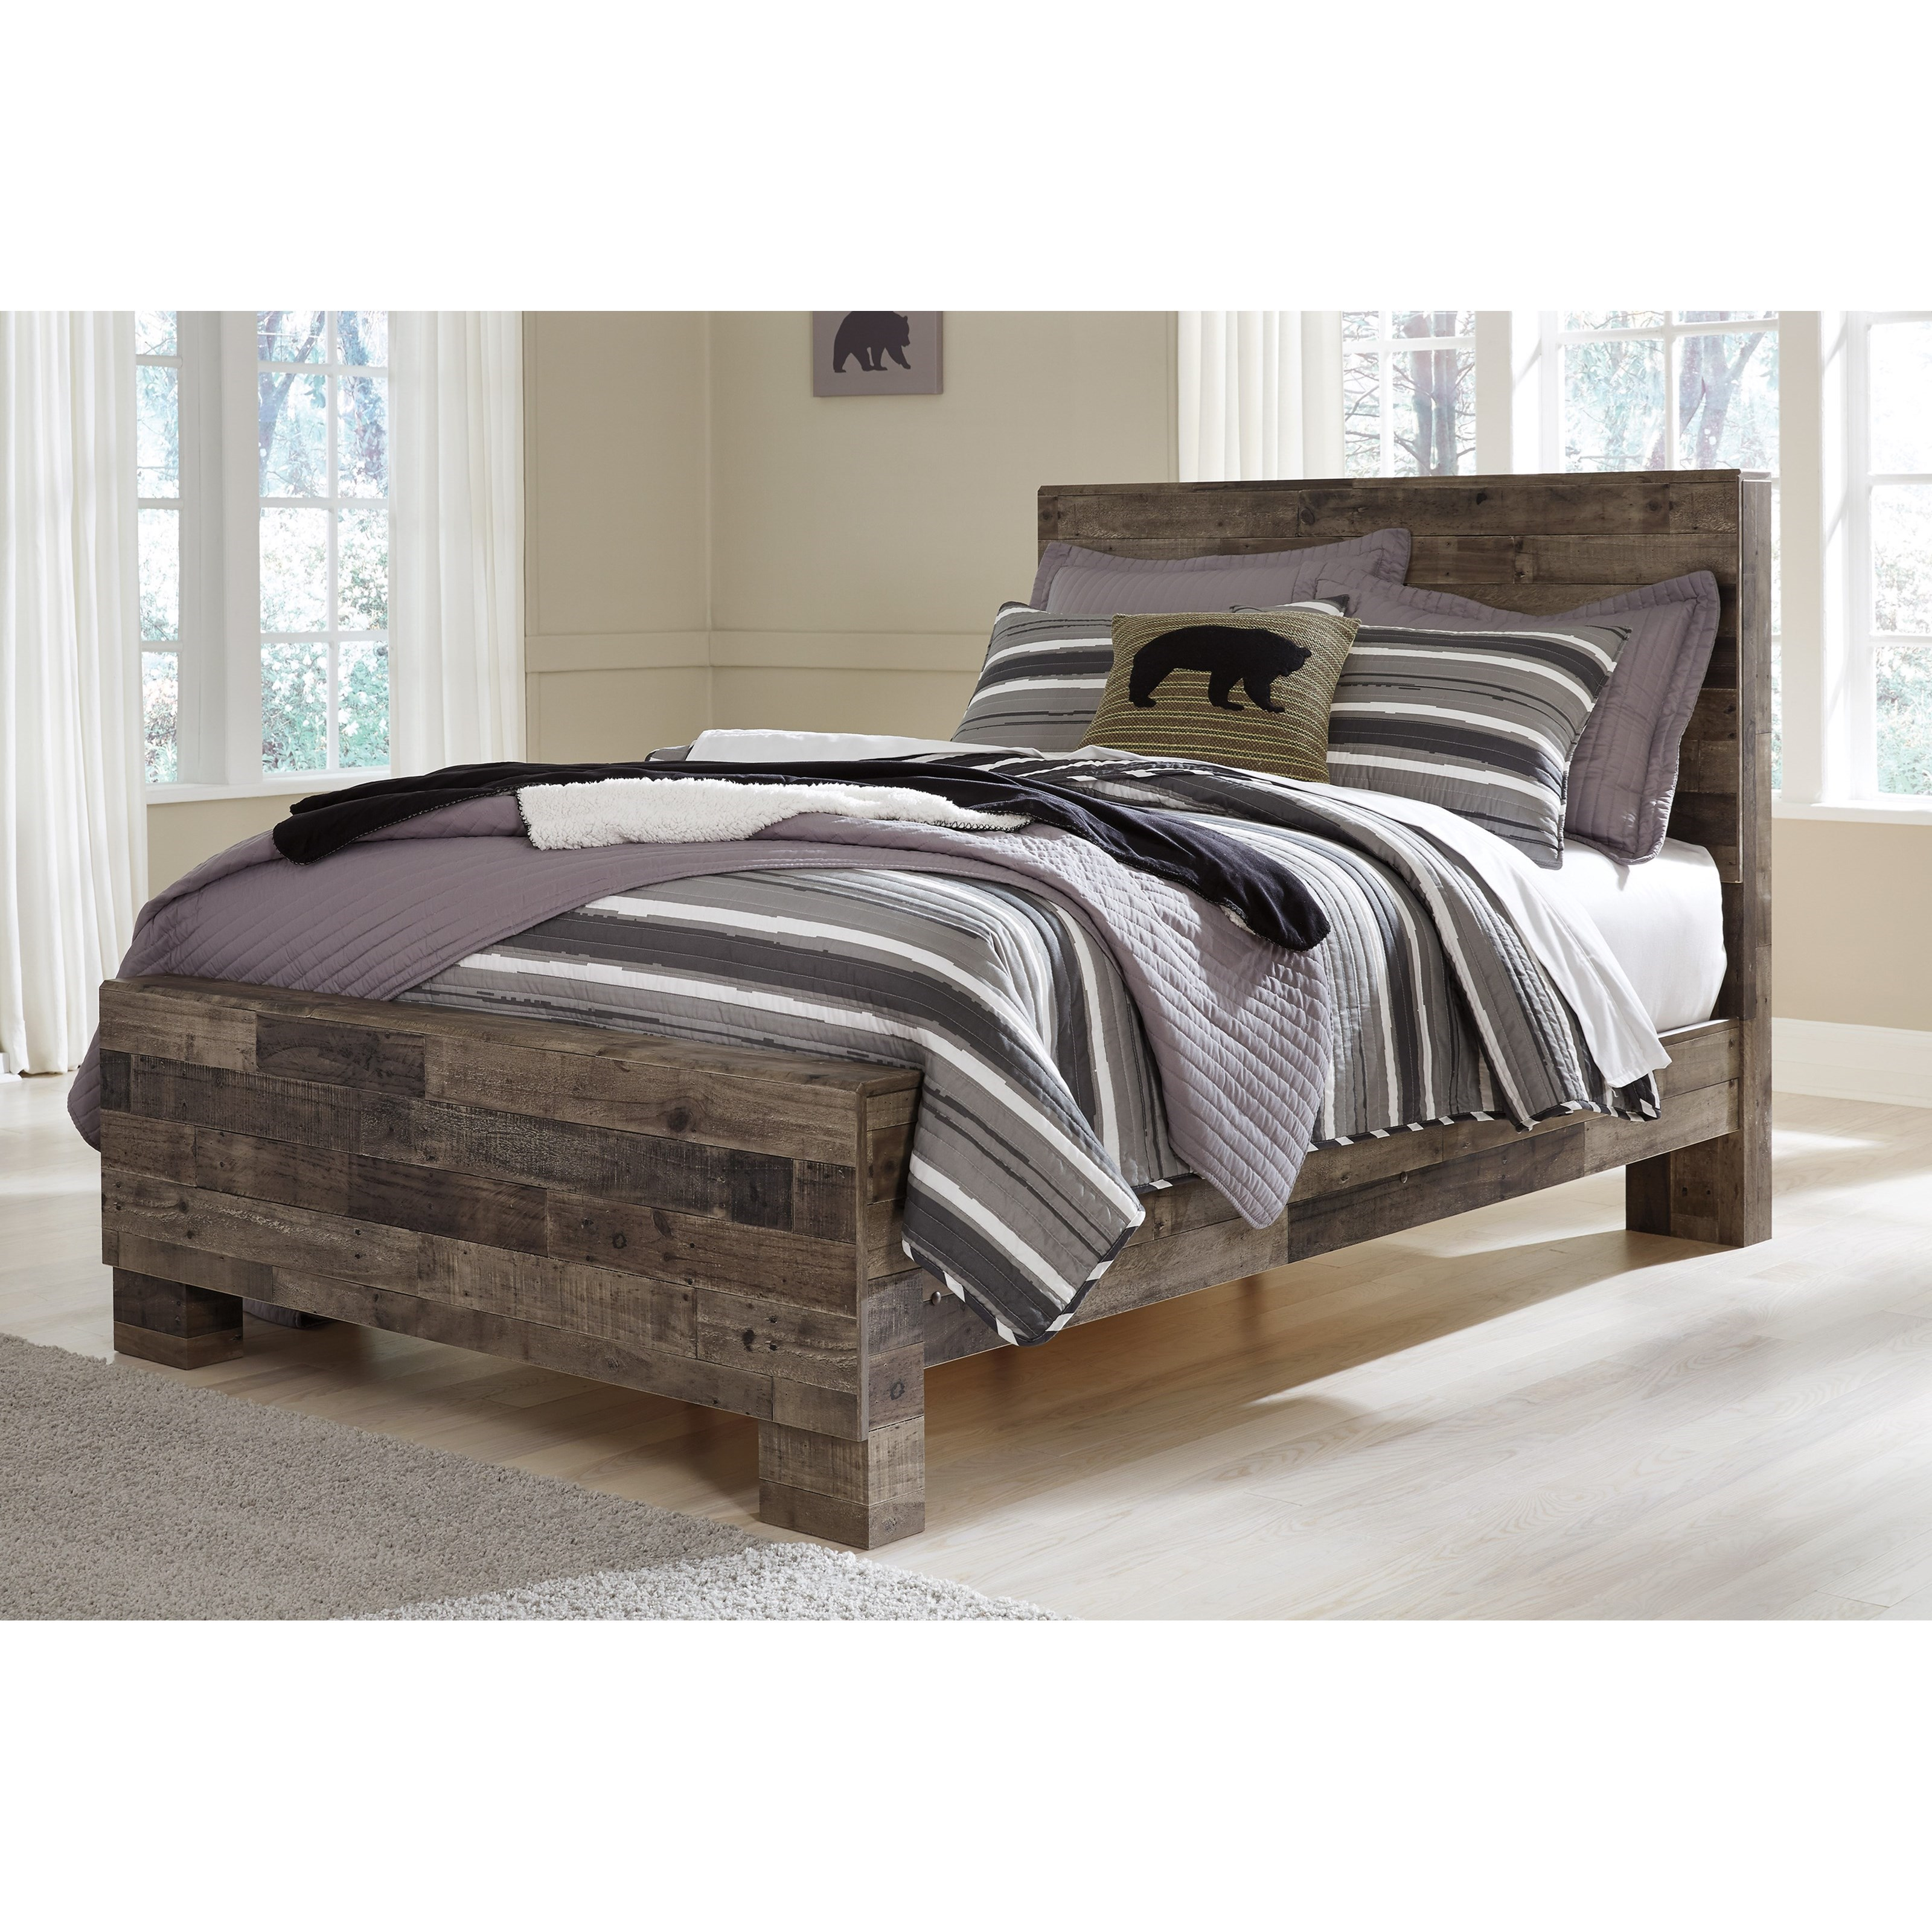 ashley derekson rustic modern full panel bed | godby home